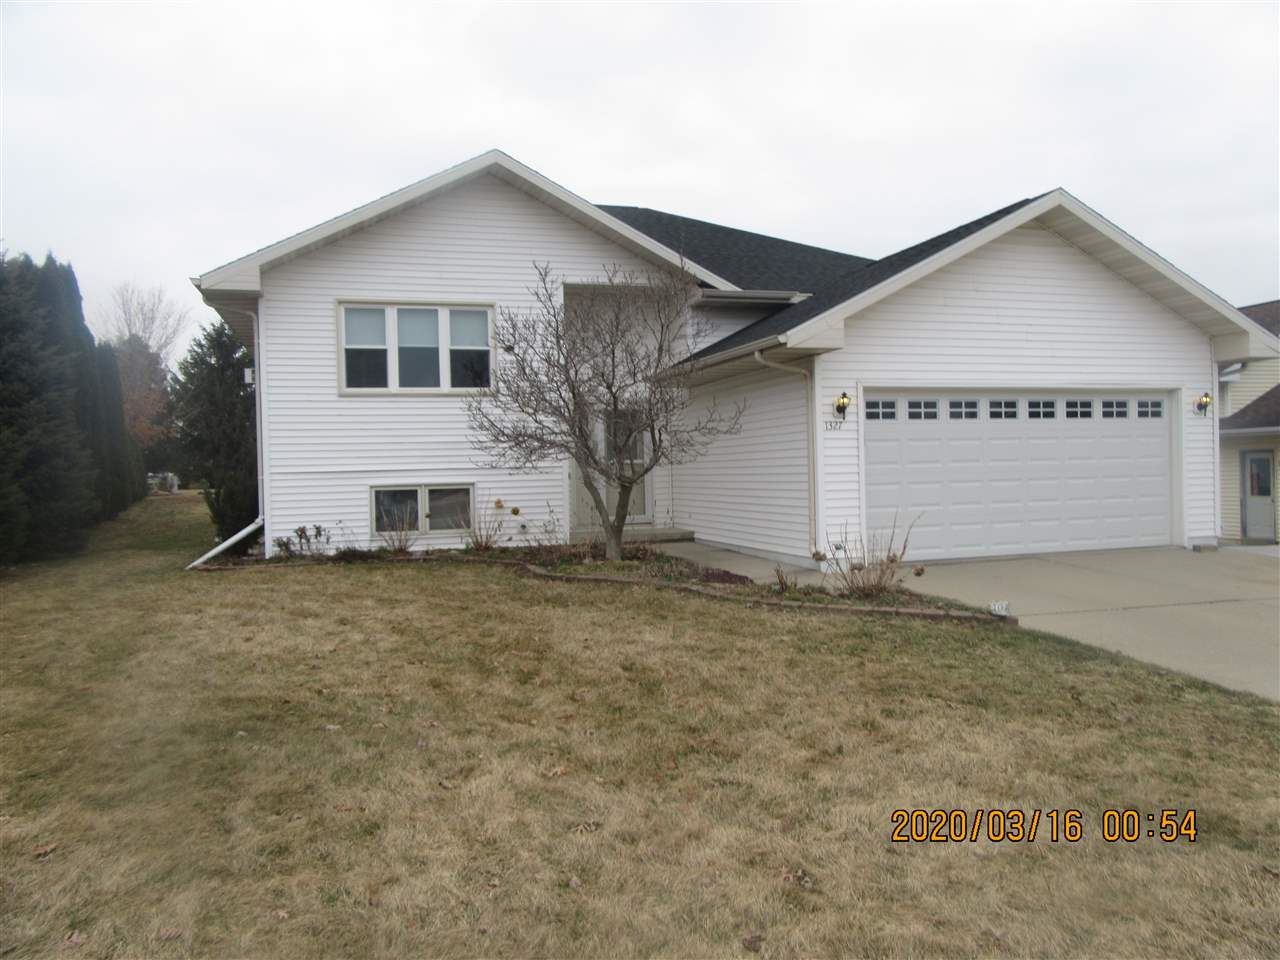 1327 Terapin Tr, Janesville, WI 53545 - #: 1879325